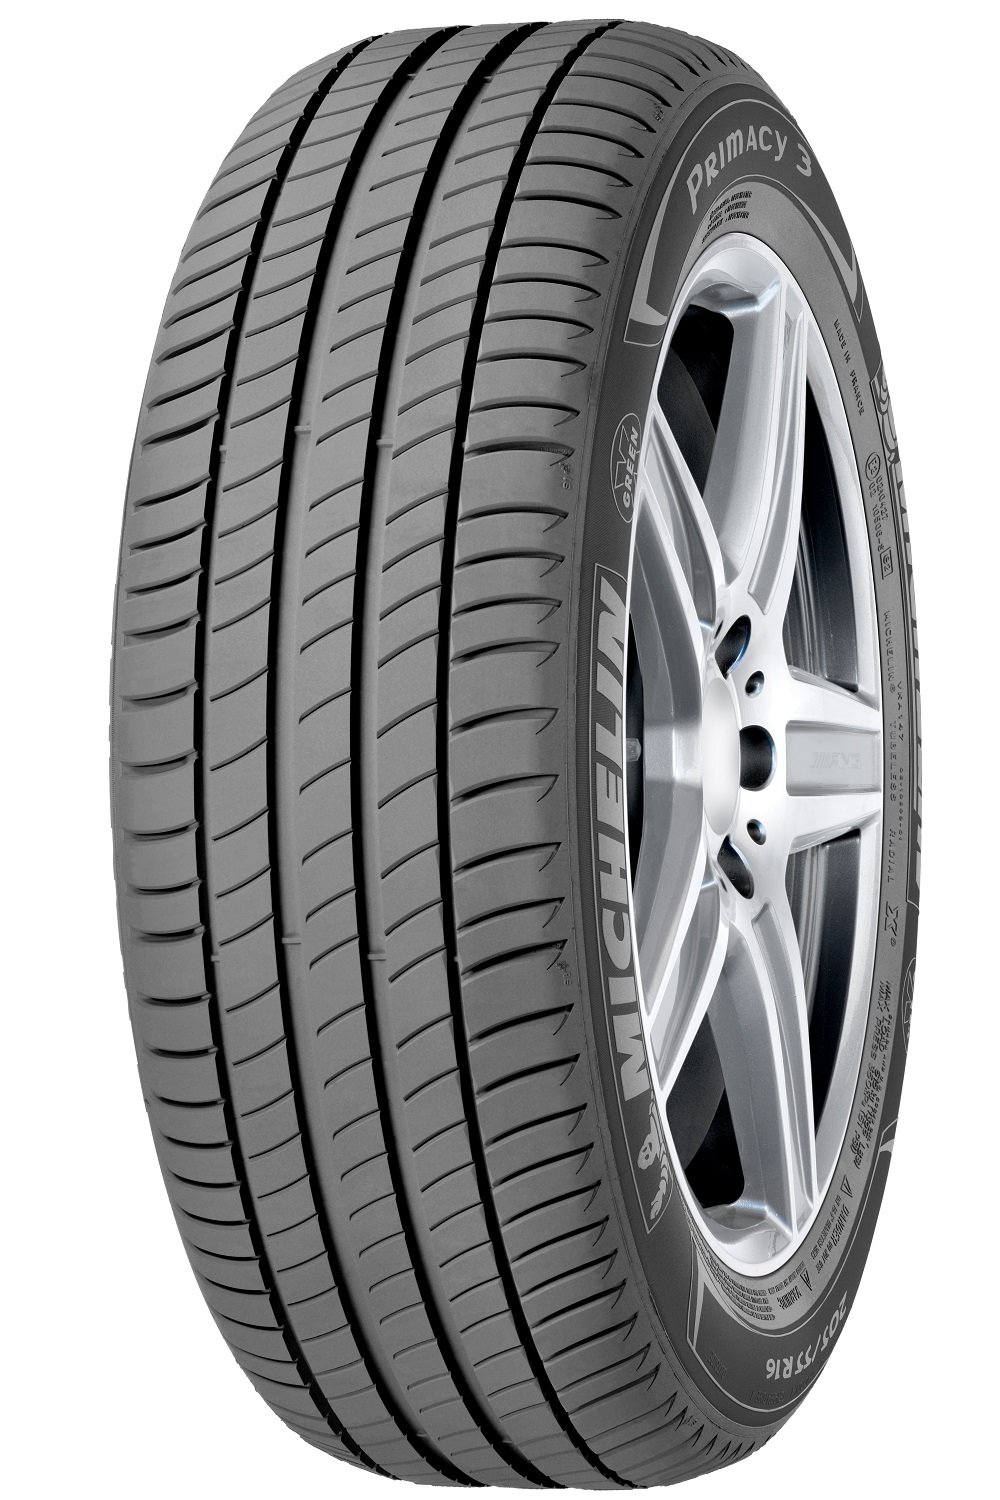 neumatico michelin primacy 3 235 45 18 98 y